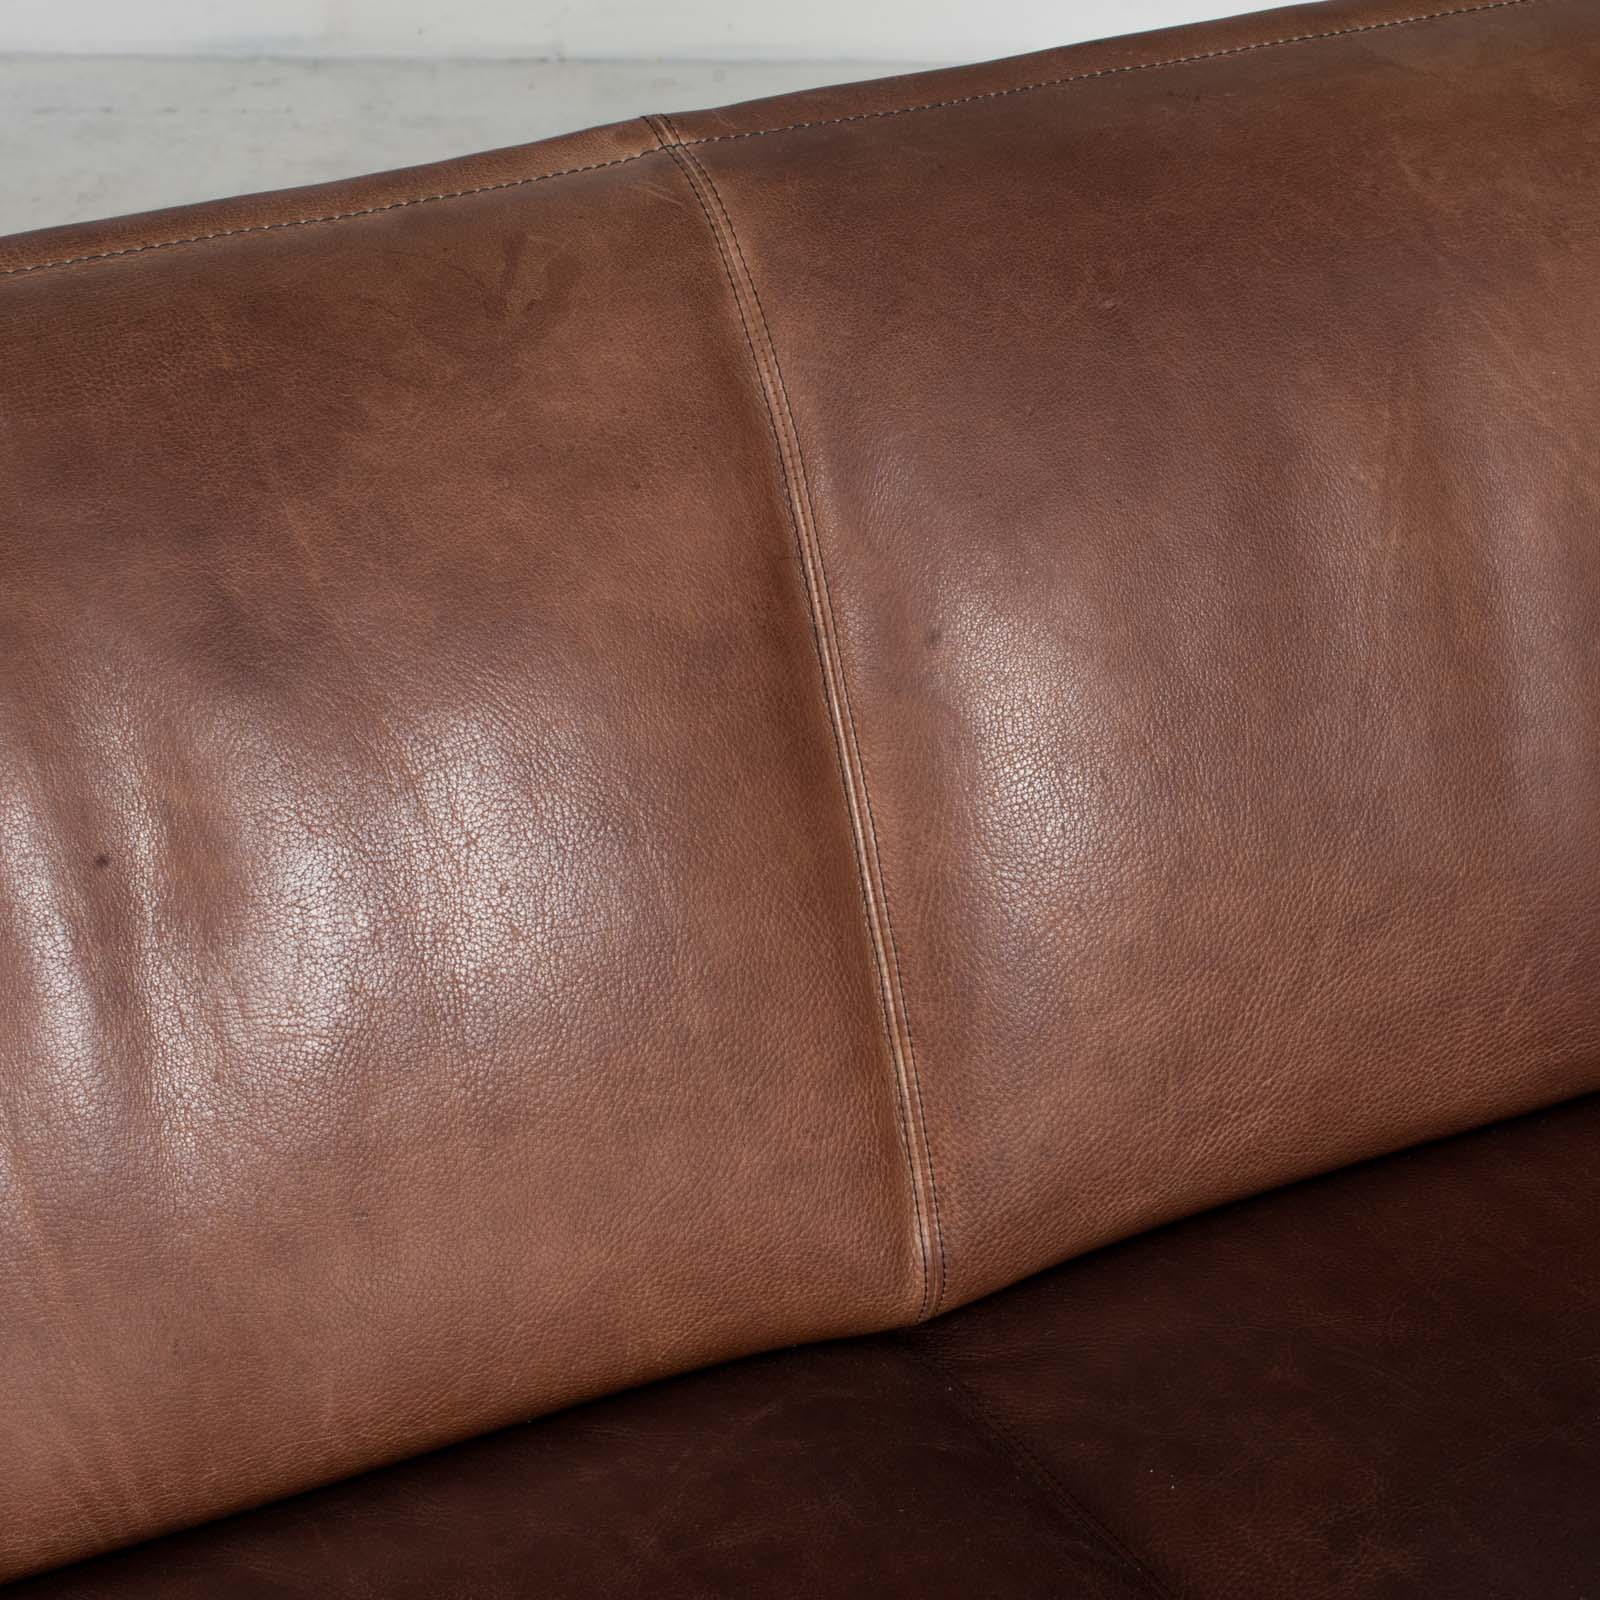 3 Seat Sofa By De Sede In Tan Neck Leather 1960s Denmark 09